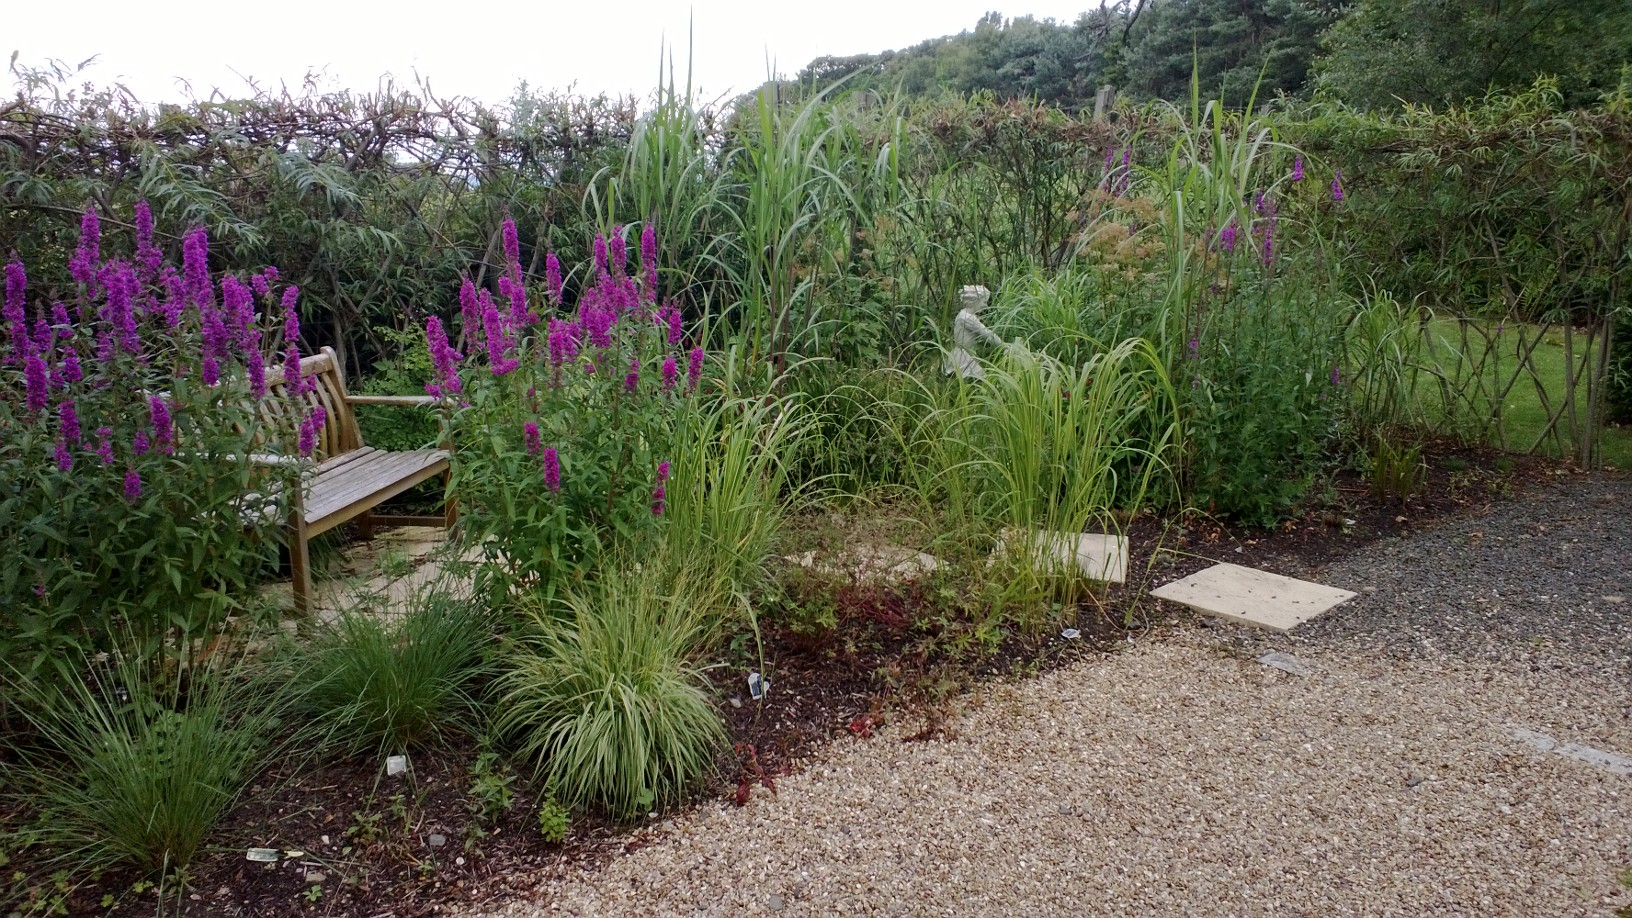 What To Grow In Small Island Bed North East Facing